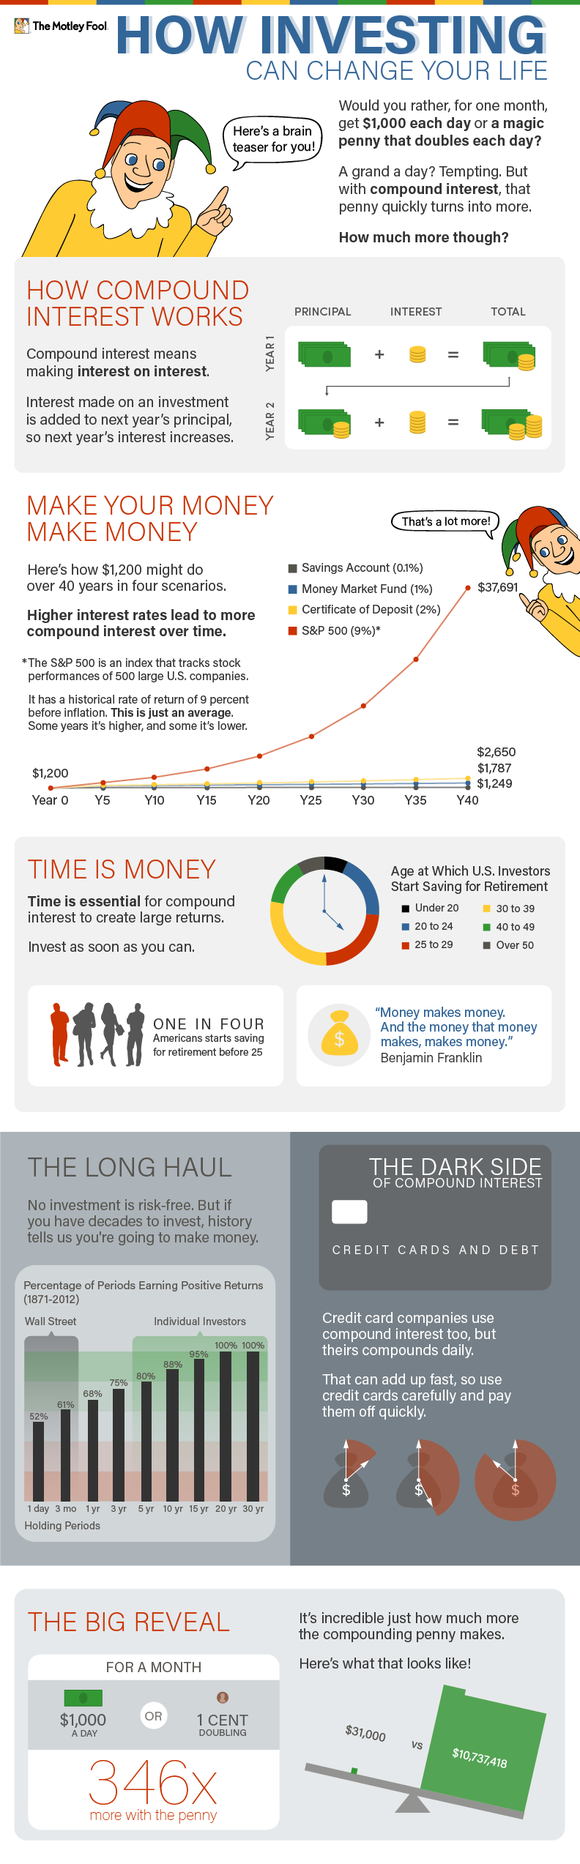 Tmf Compound Interest Infographic Final Larger